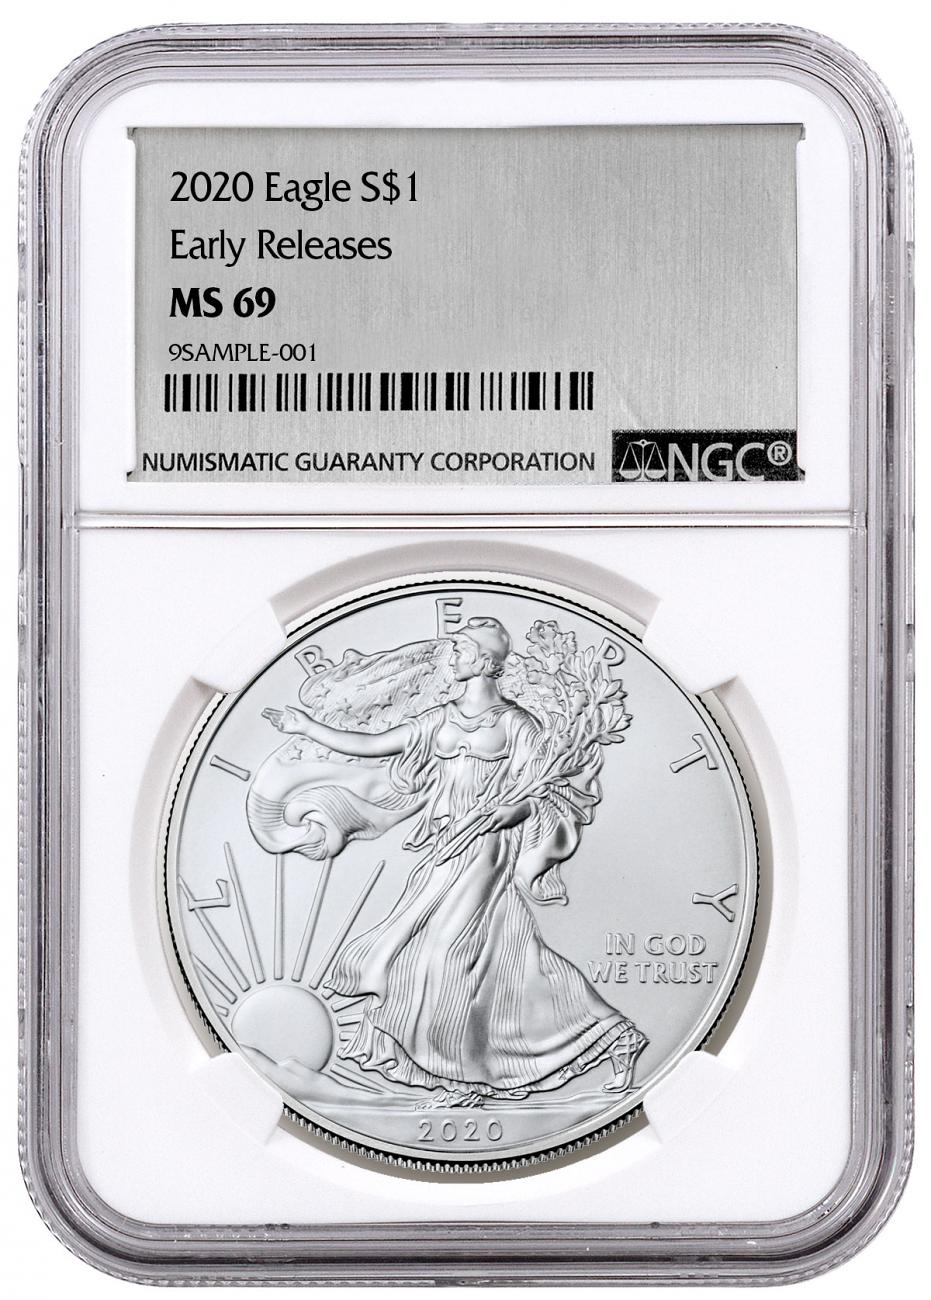 2020 1 oz American Silver Eagle $1 Coin NGC MS69 ER Silver Foil Label